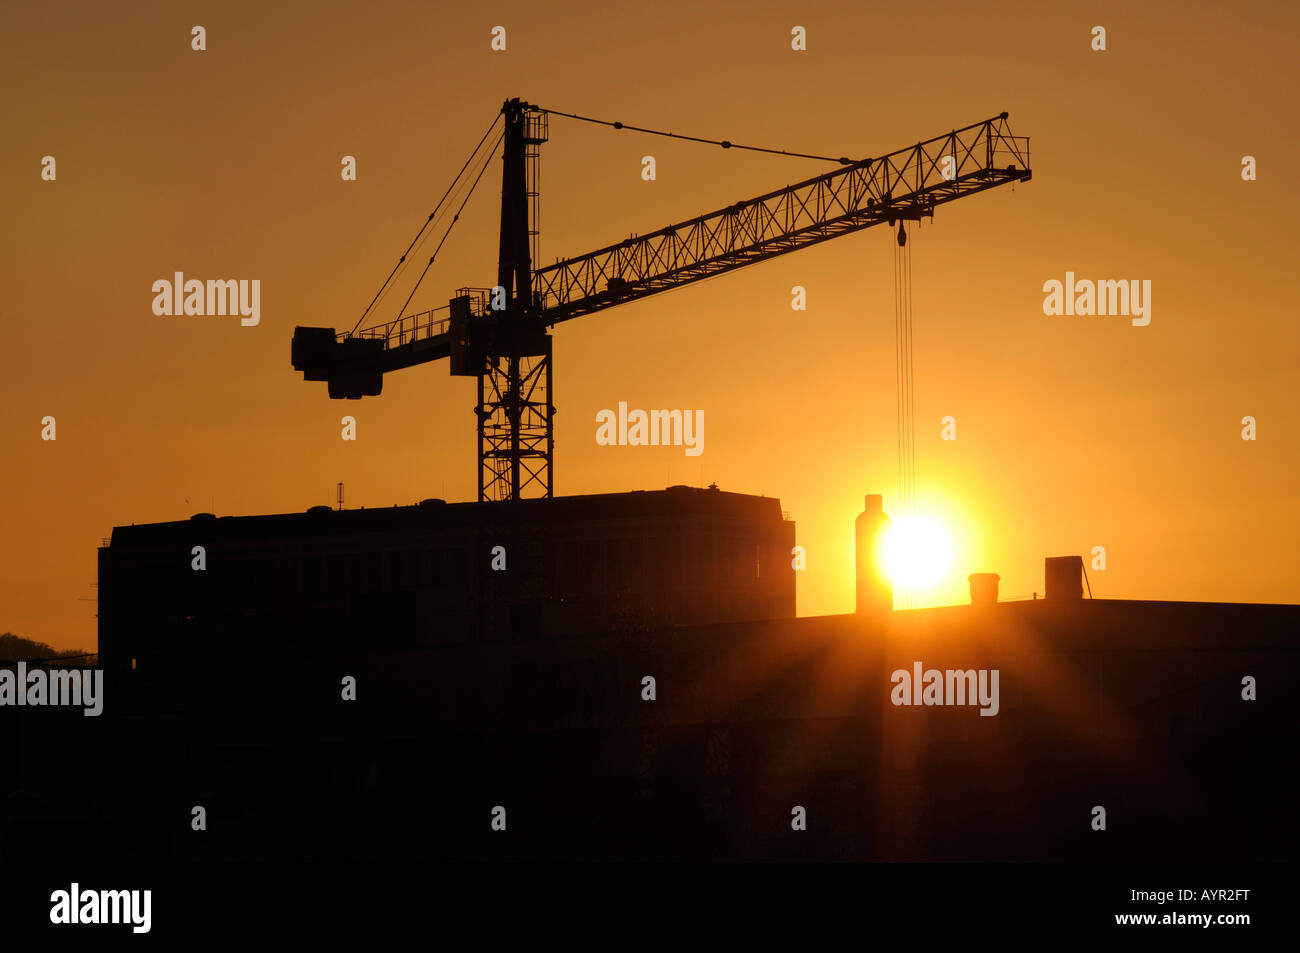 Construction crane at a building site, setting sun - Stock Image